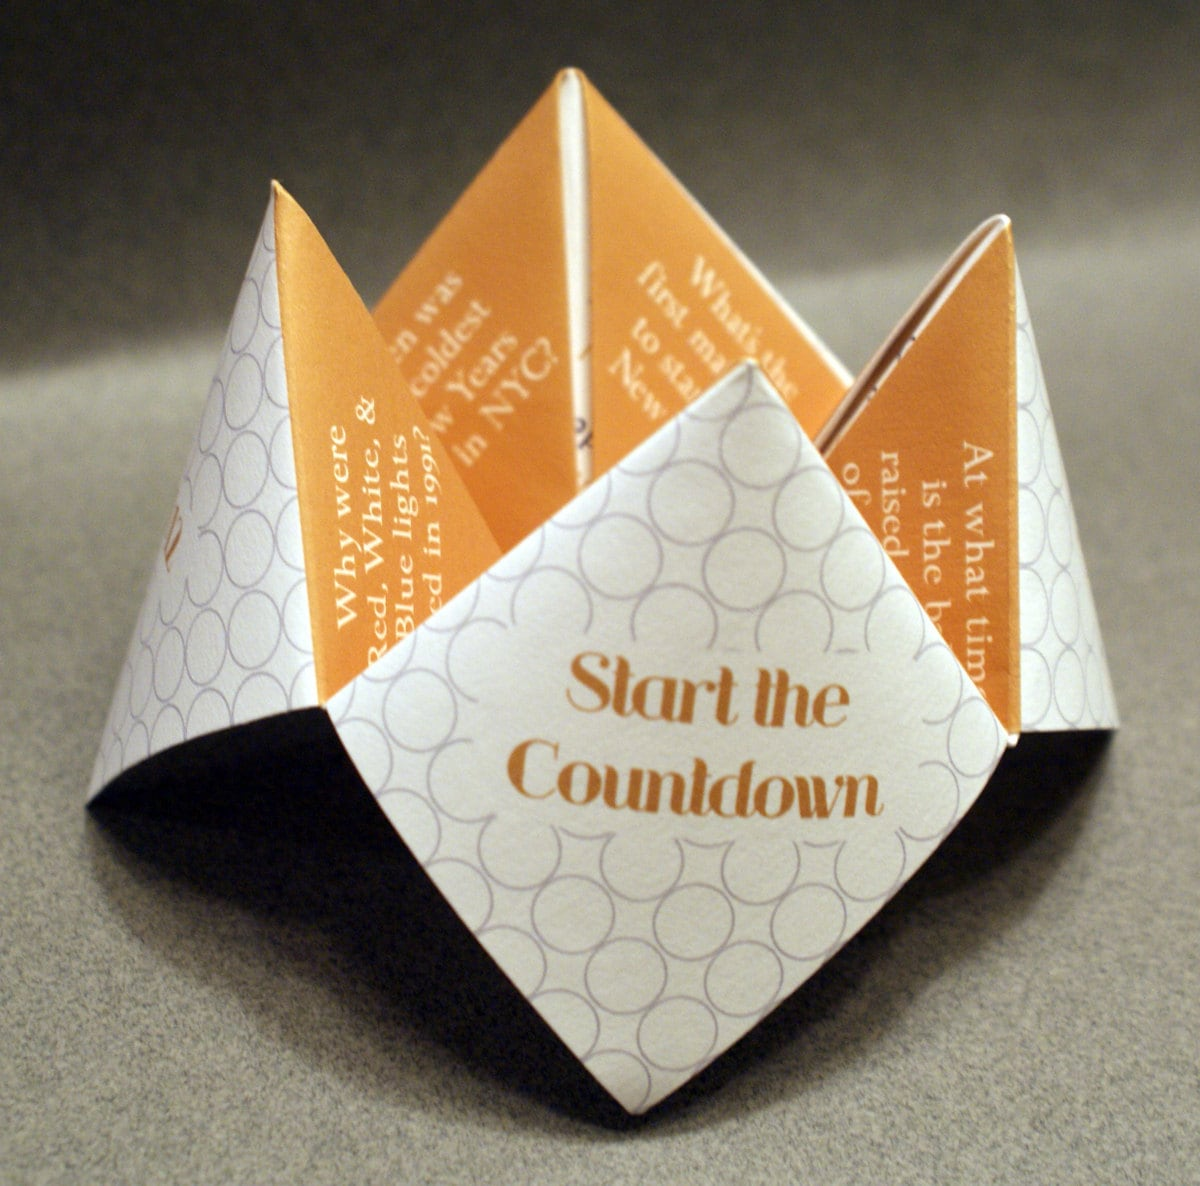 New Years Favor, New Years Card, New Years Decoration, Happy New Year, New Years Eve, Cootie Catcher, Card, Invitation, DIY, Custom